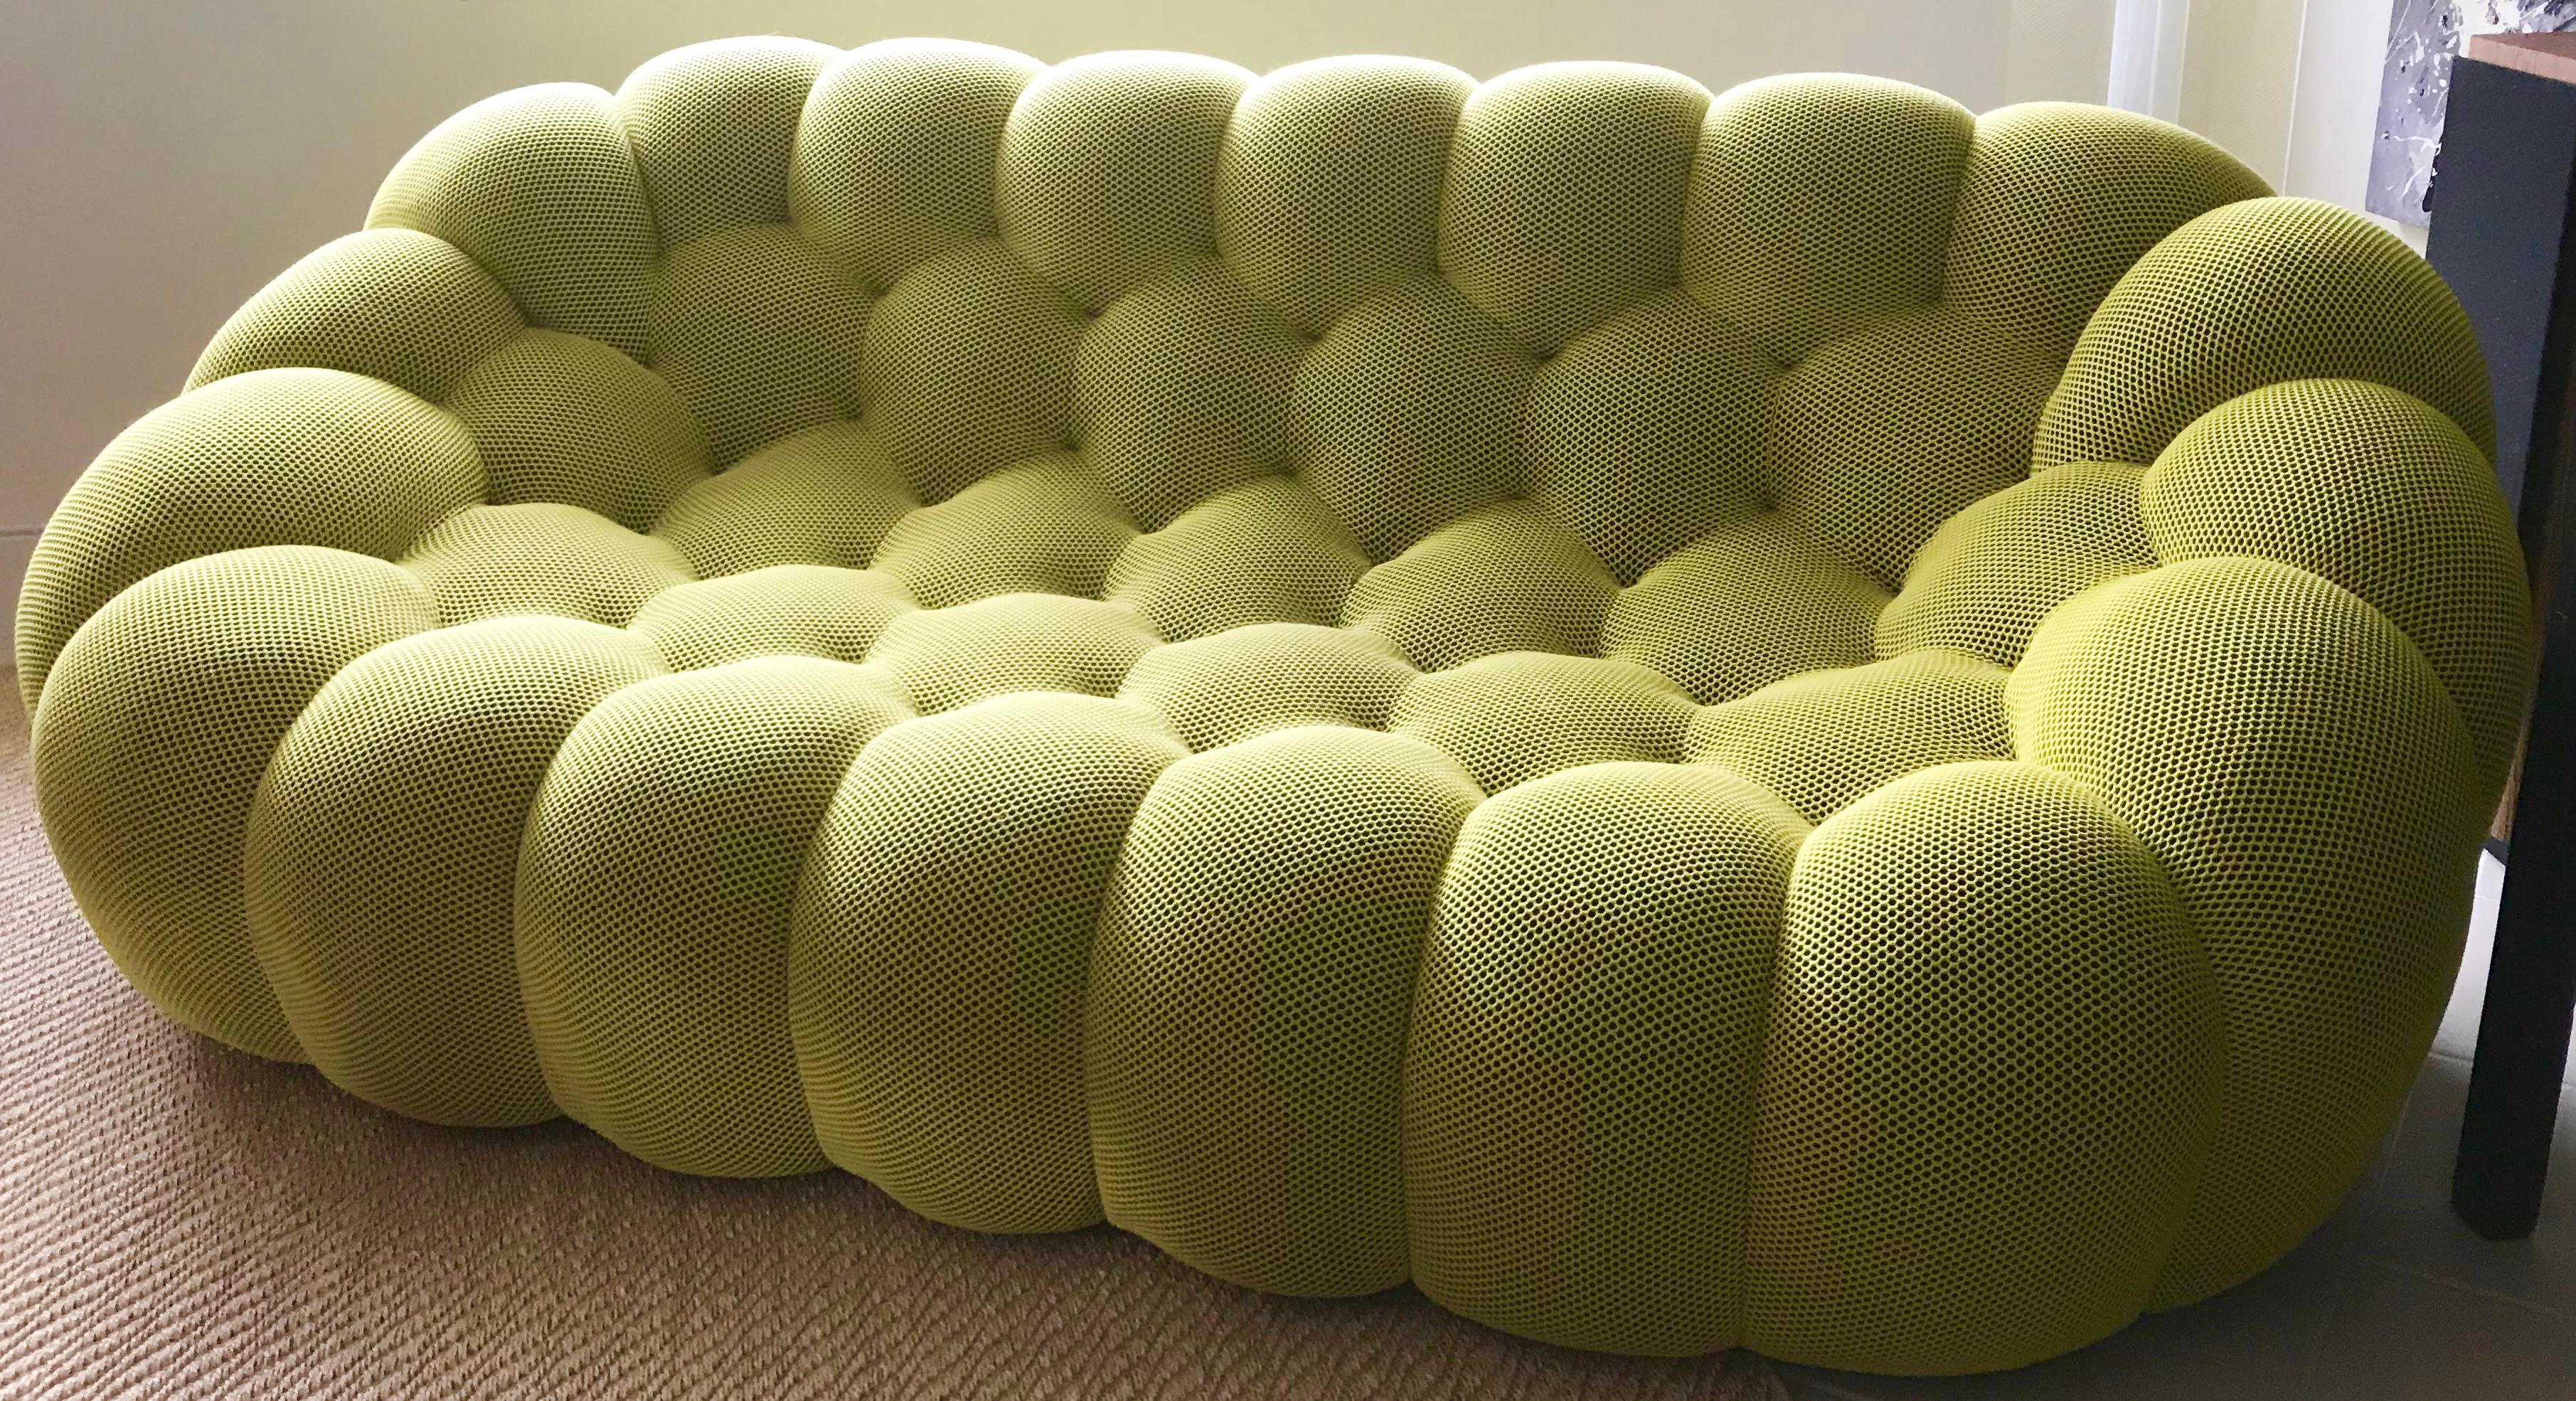 Bubble Sofa By Sacha Lakic For Roche Bobois   Image 5 Of 6